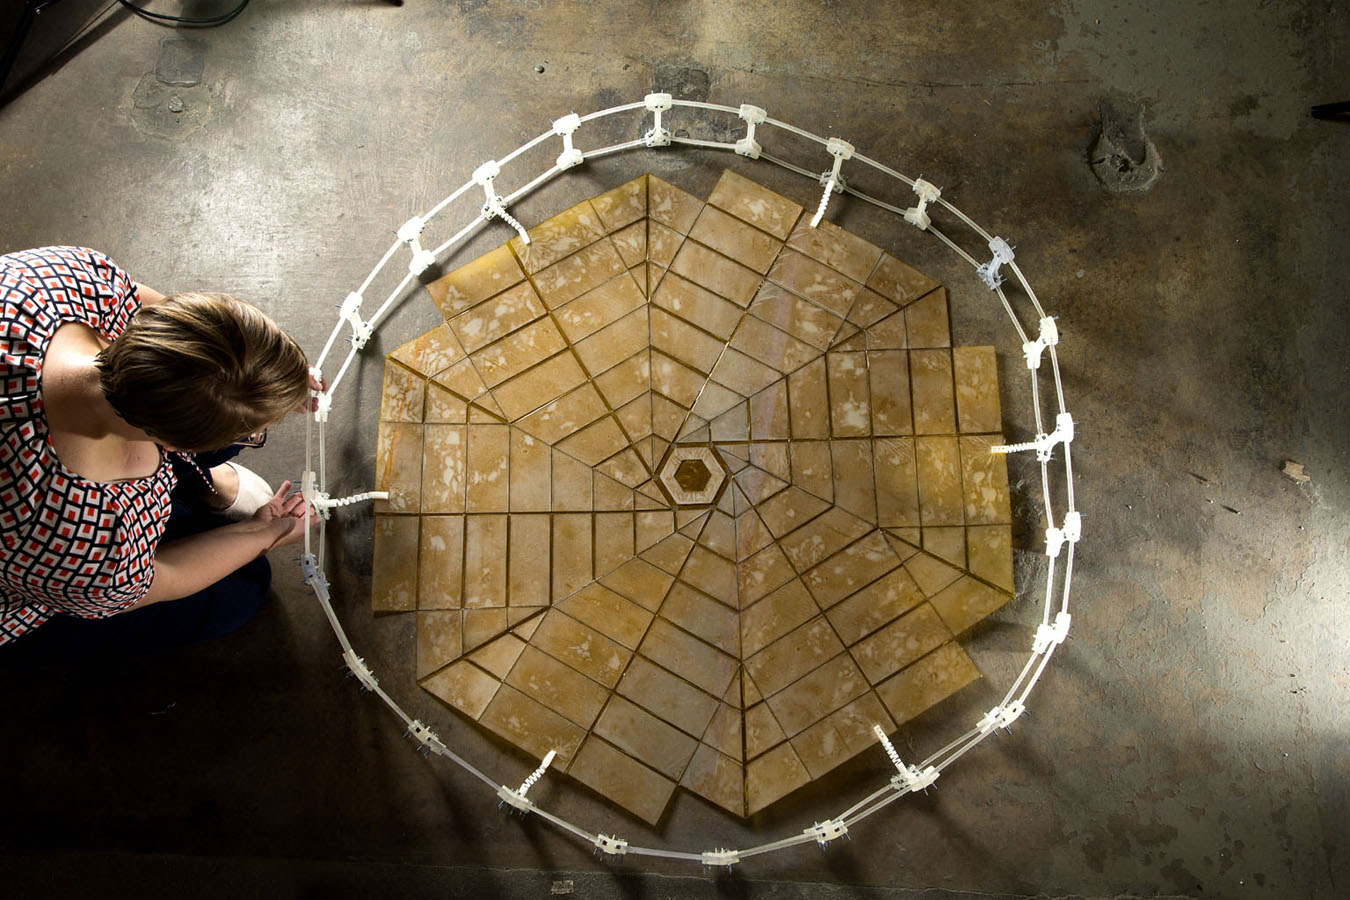 A Ph.D. student in mechanical engineering at Brigham Young University, Provo, Utah, unfolds a solar panel array that was designed using the principles of origami.